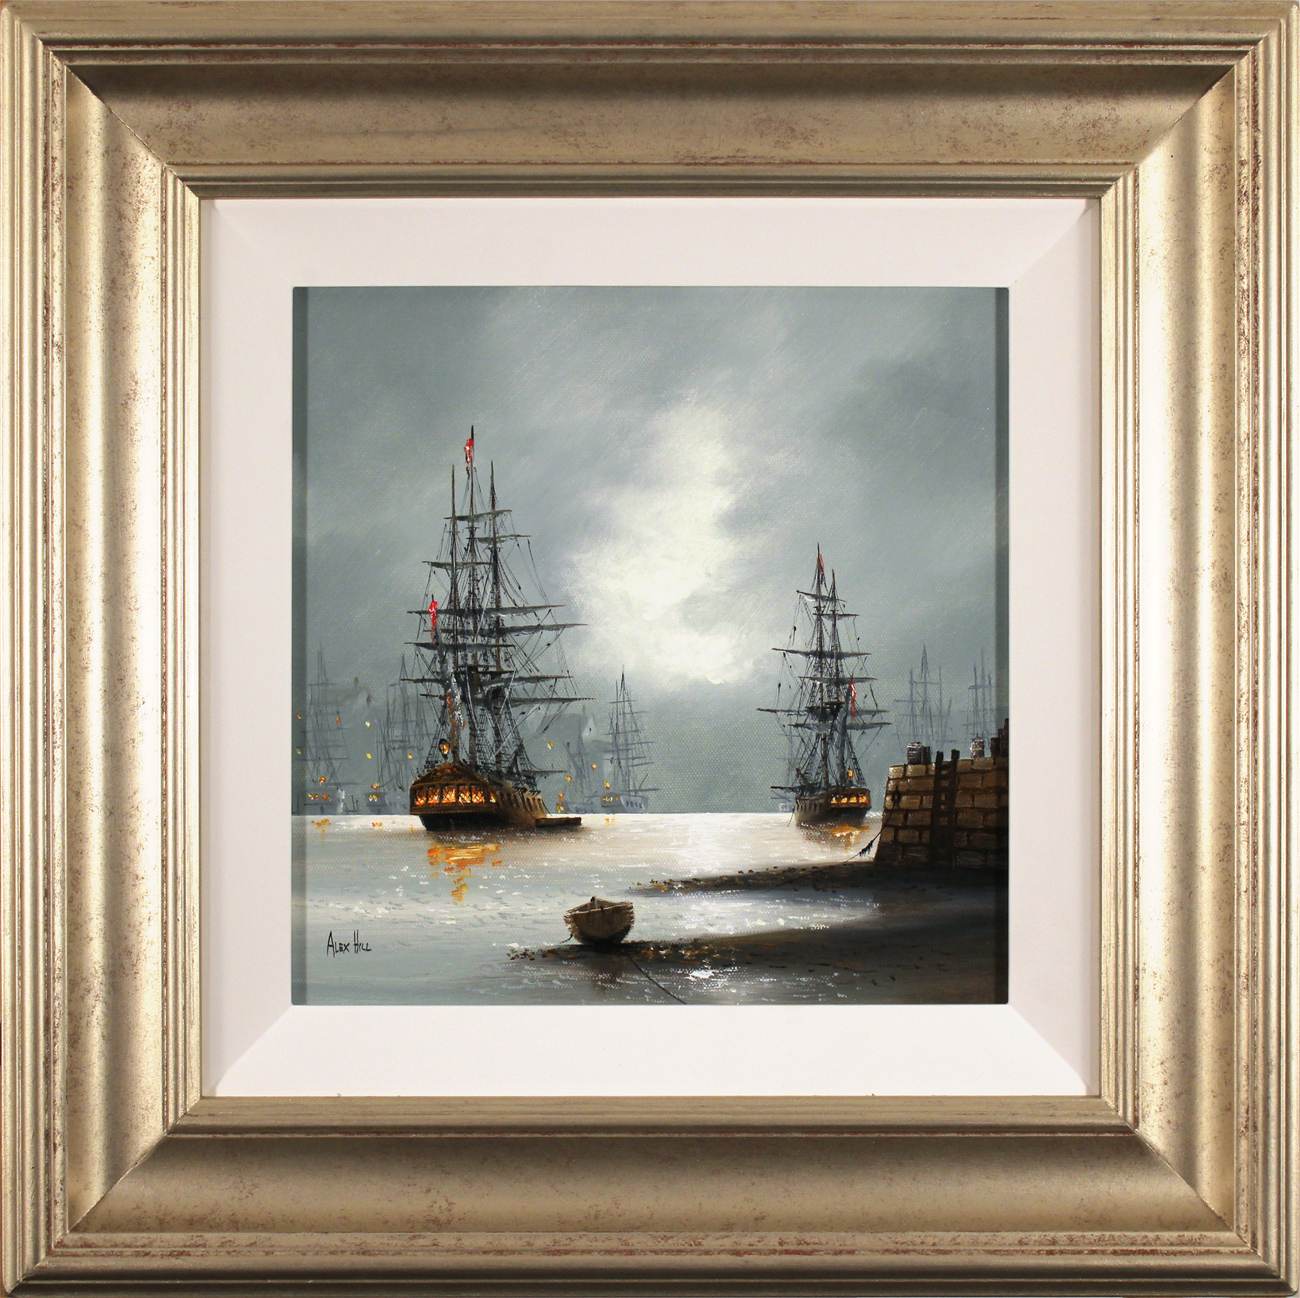 Alex Hill, Original oil painting on canvas, Dockside Click to enlarge